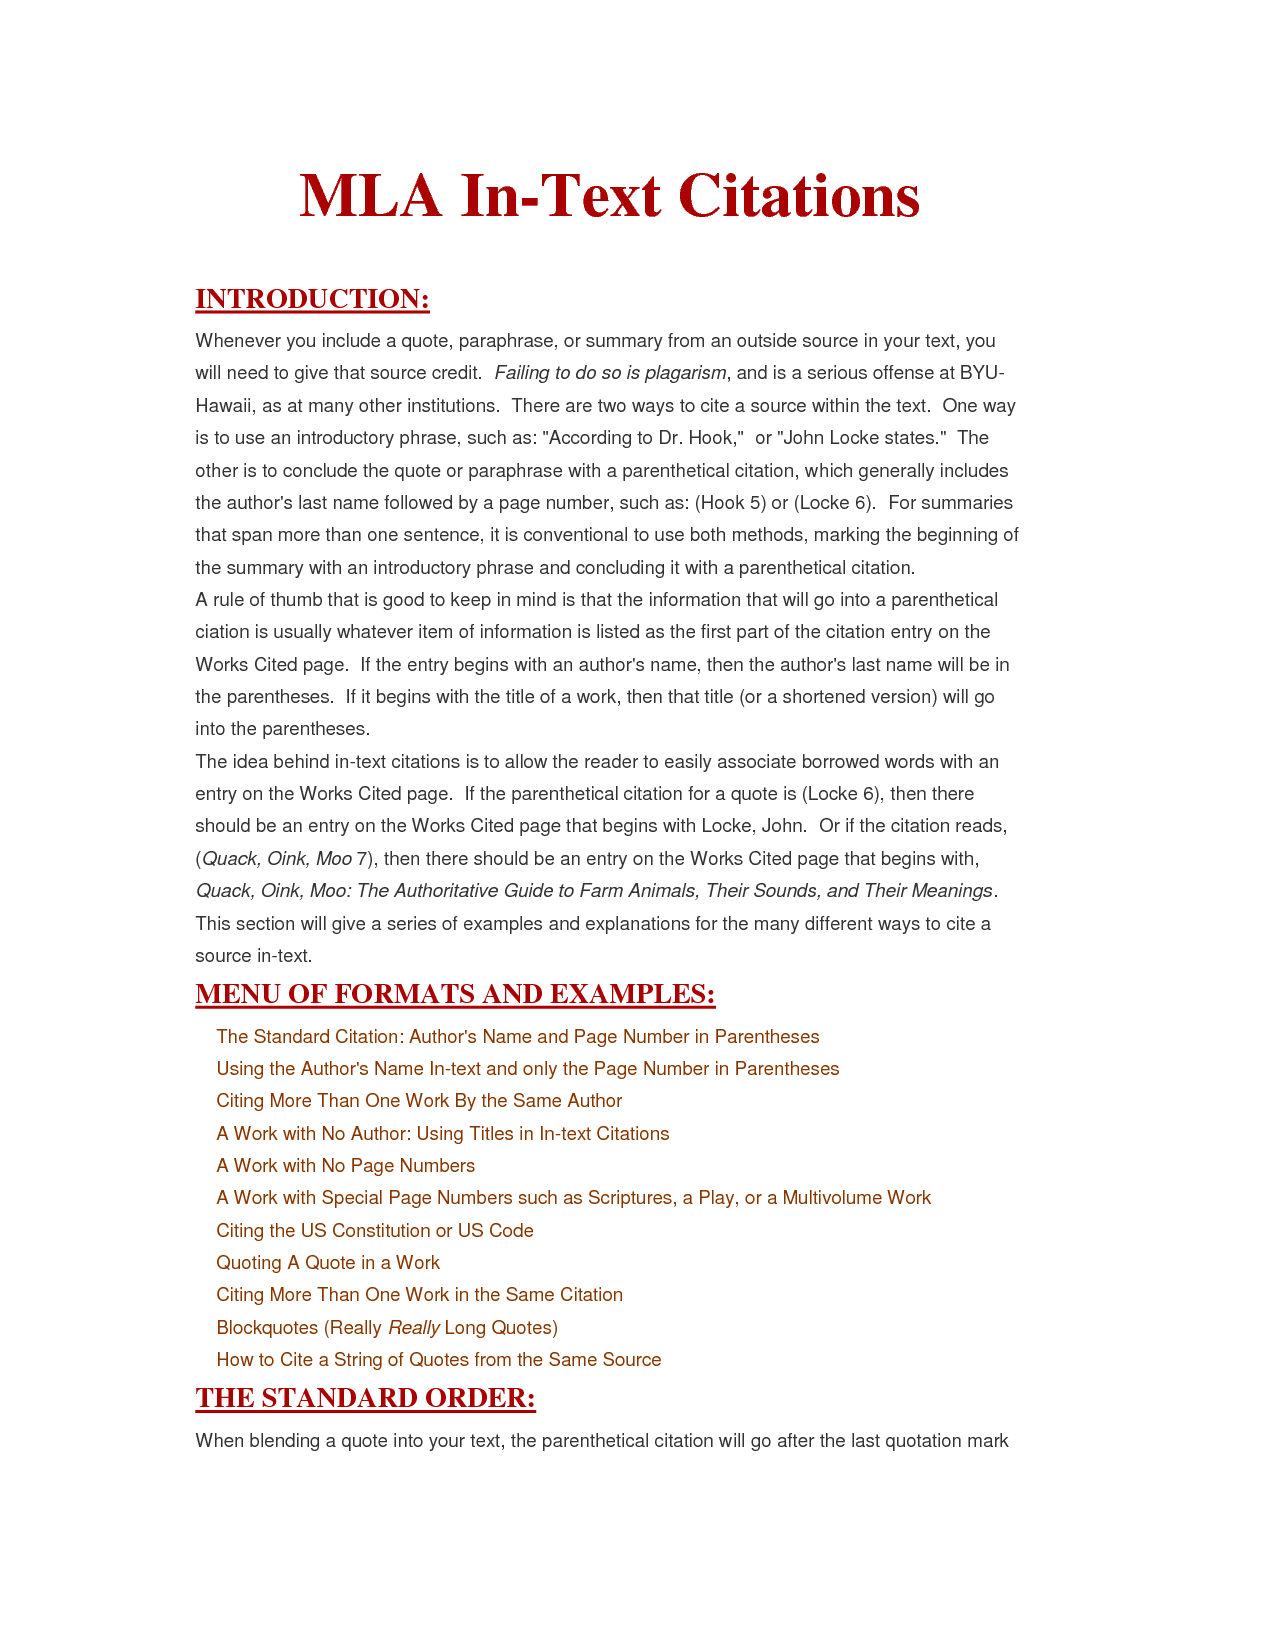 MLA In-Text Citations: The Basics